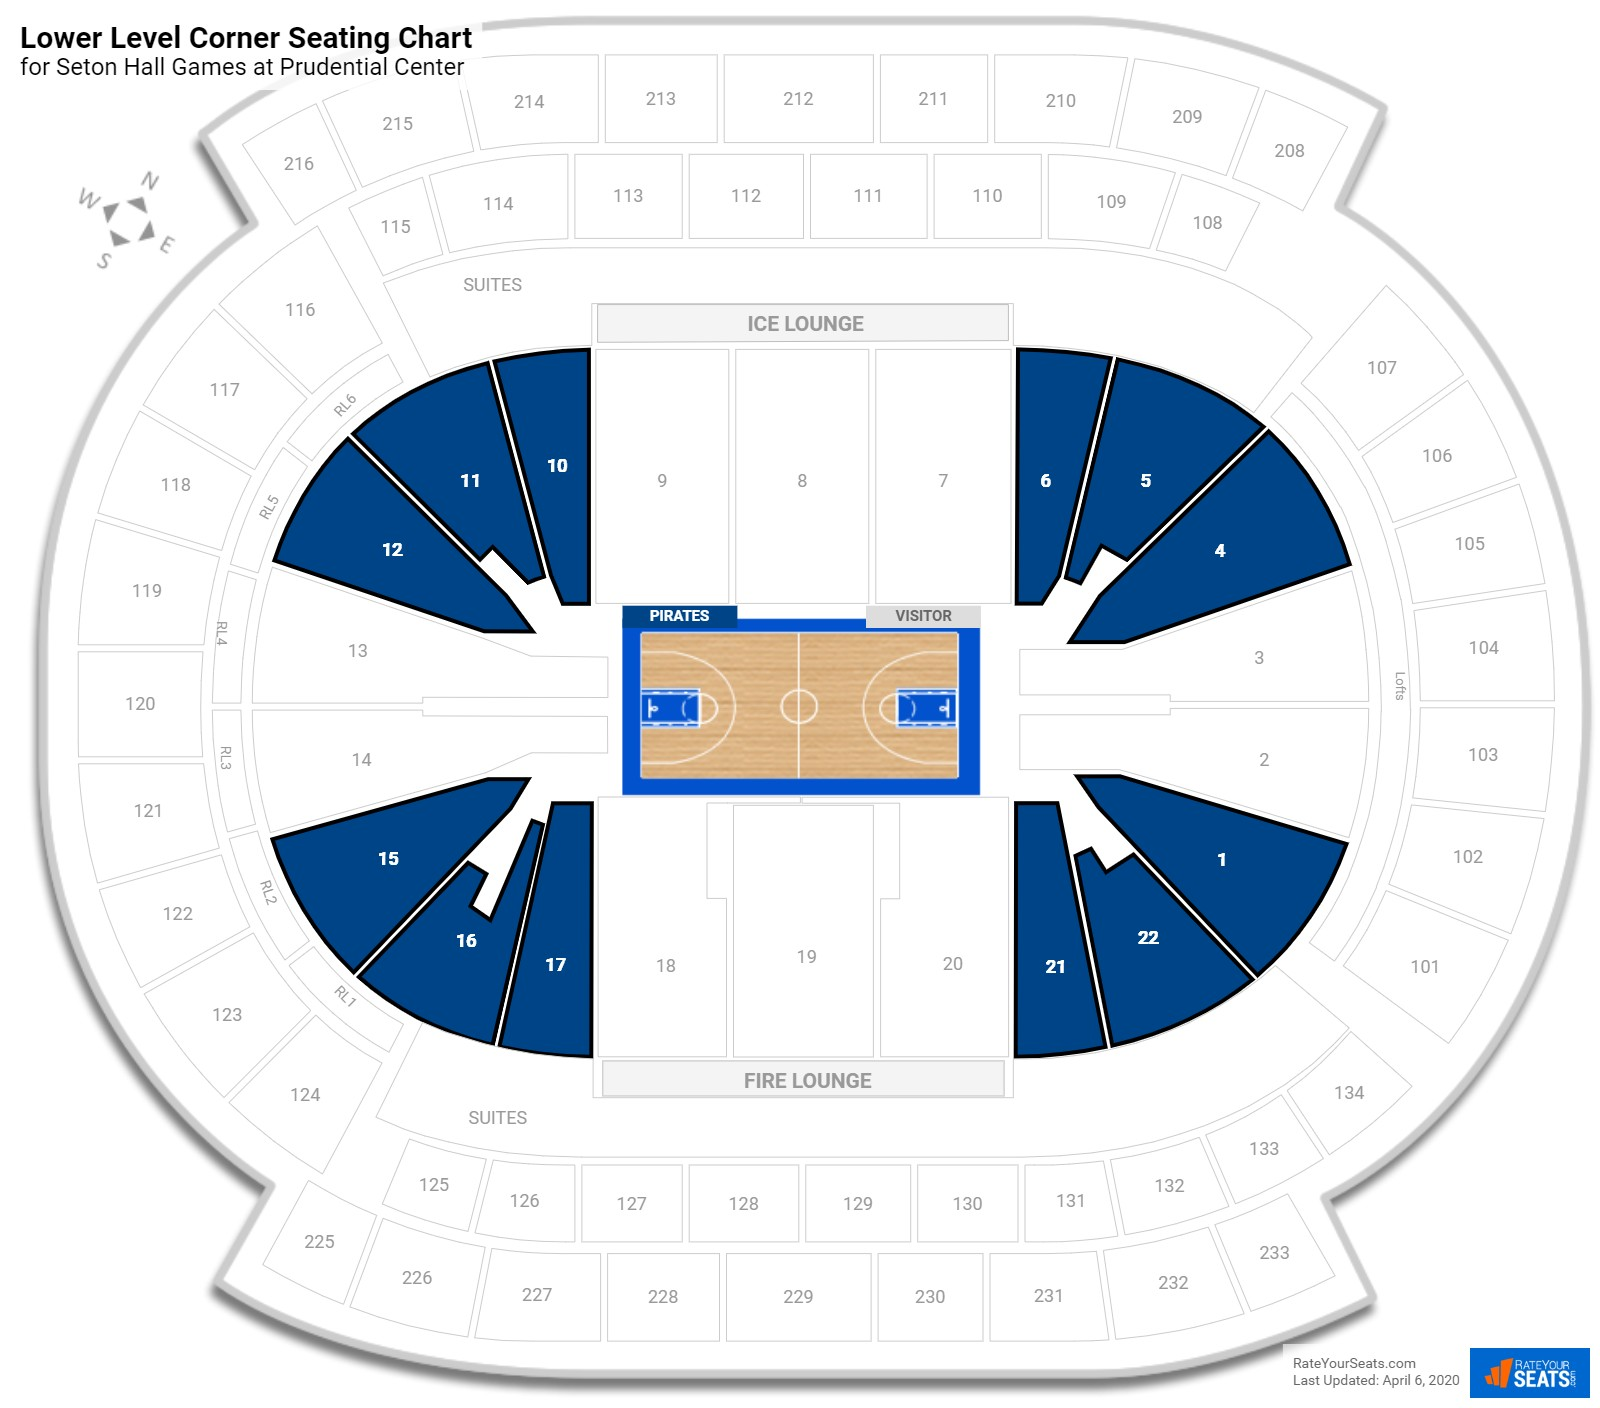 Theatre Seating Nhl Nj Devils Hockey Prudential Center Lower Level Corner Chart With Row Numbers Staples